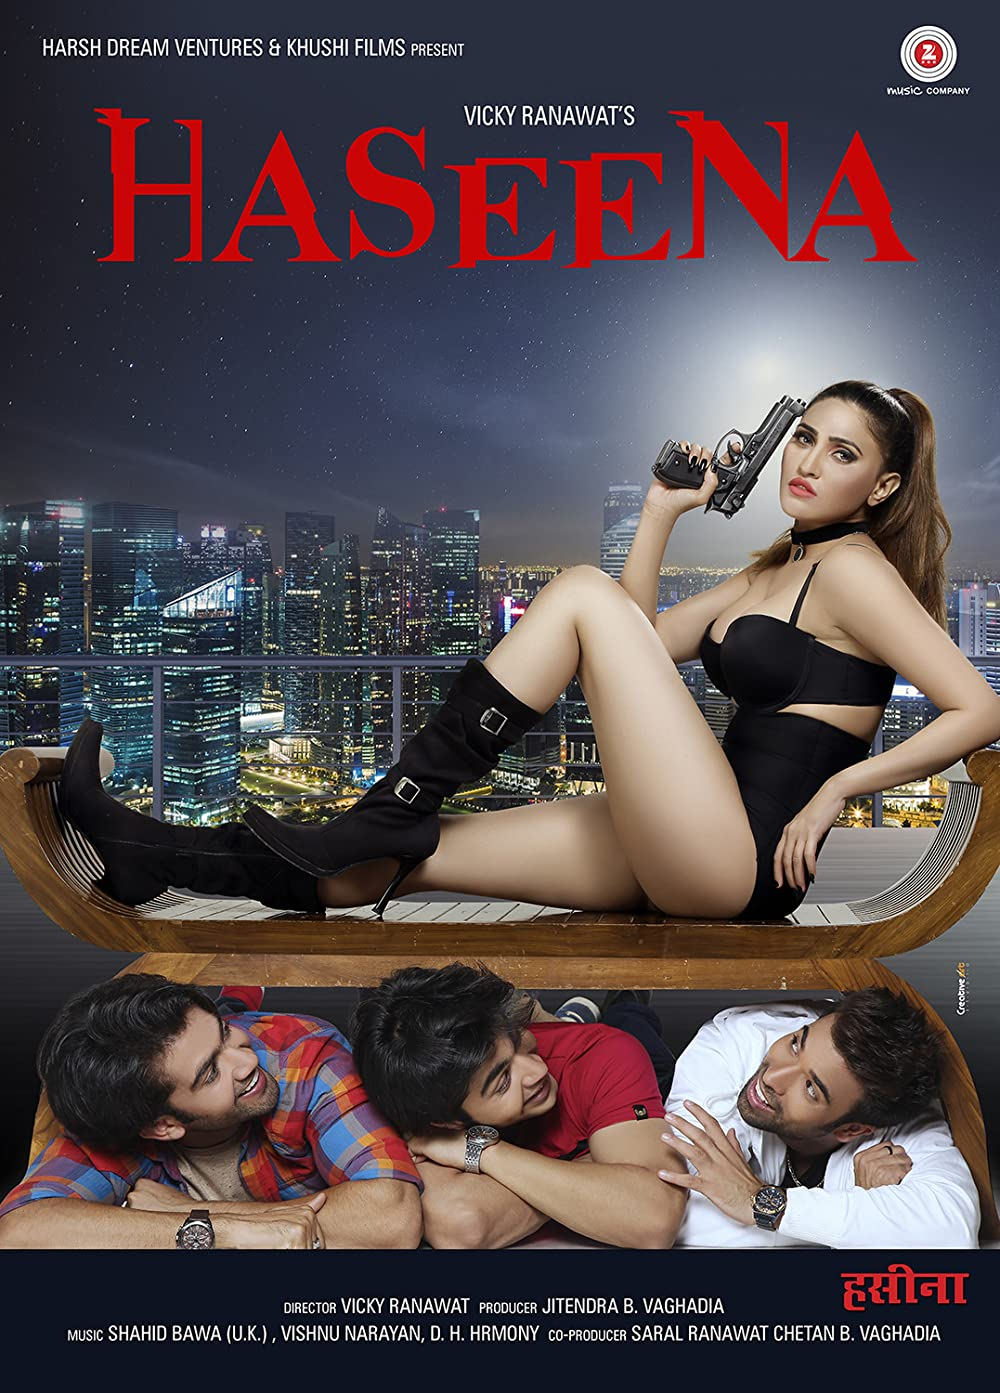 18+Haseena (2021) Hindi Movie HDRip 720p AAC